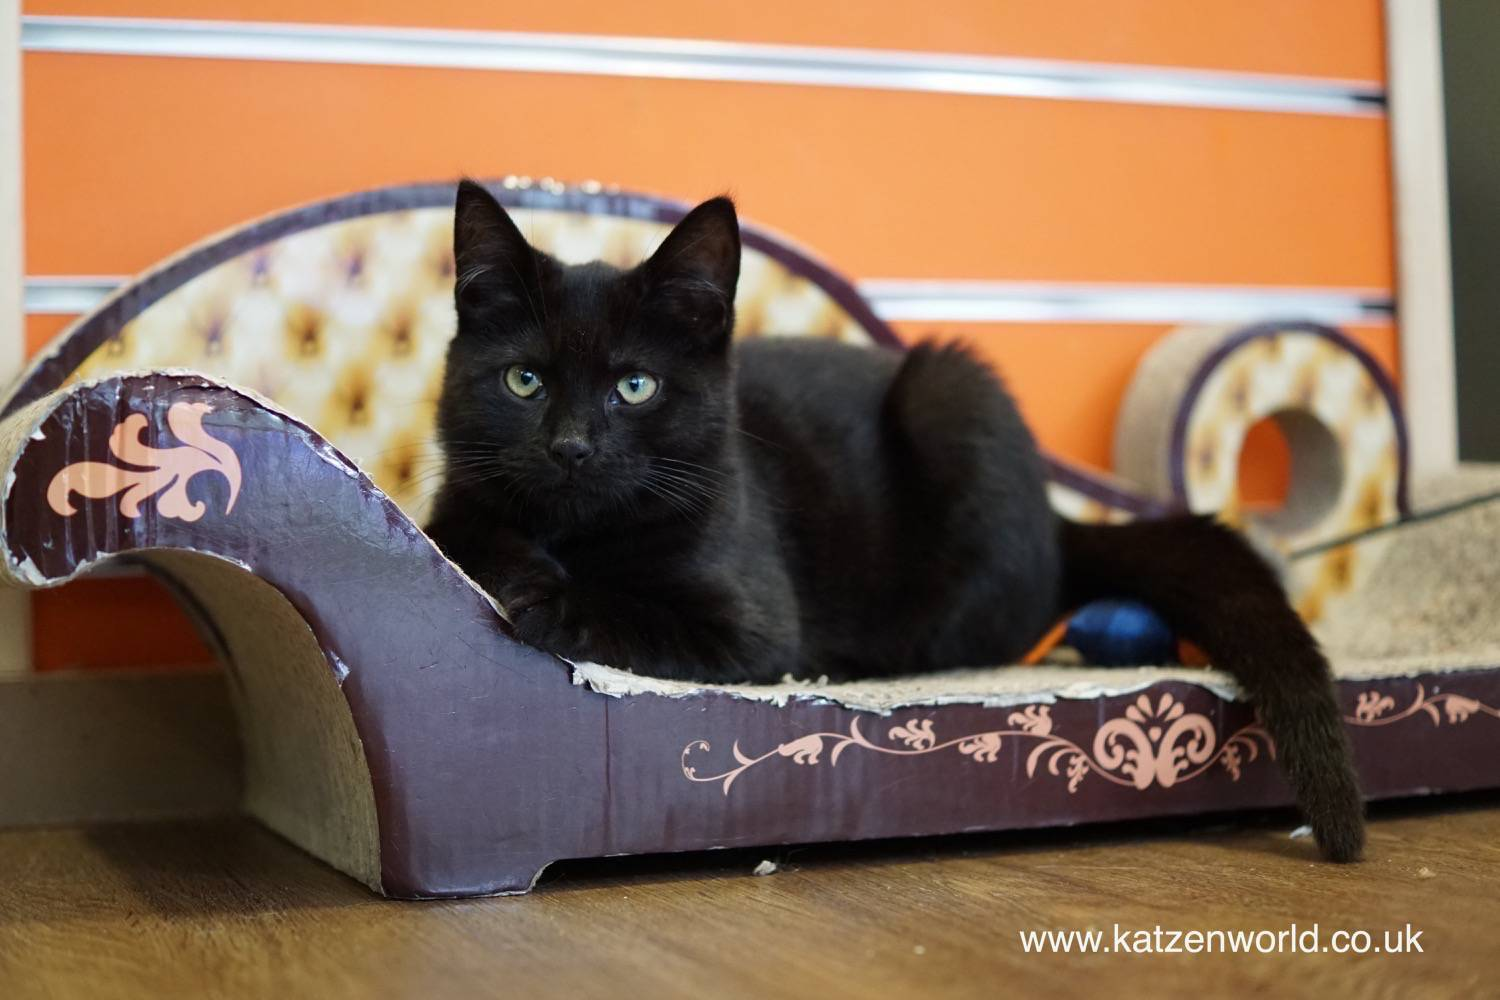 Our visit to Kitty Café – Nottingham: Cute or Naughty?